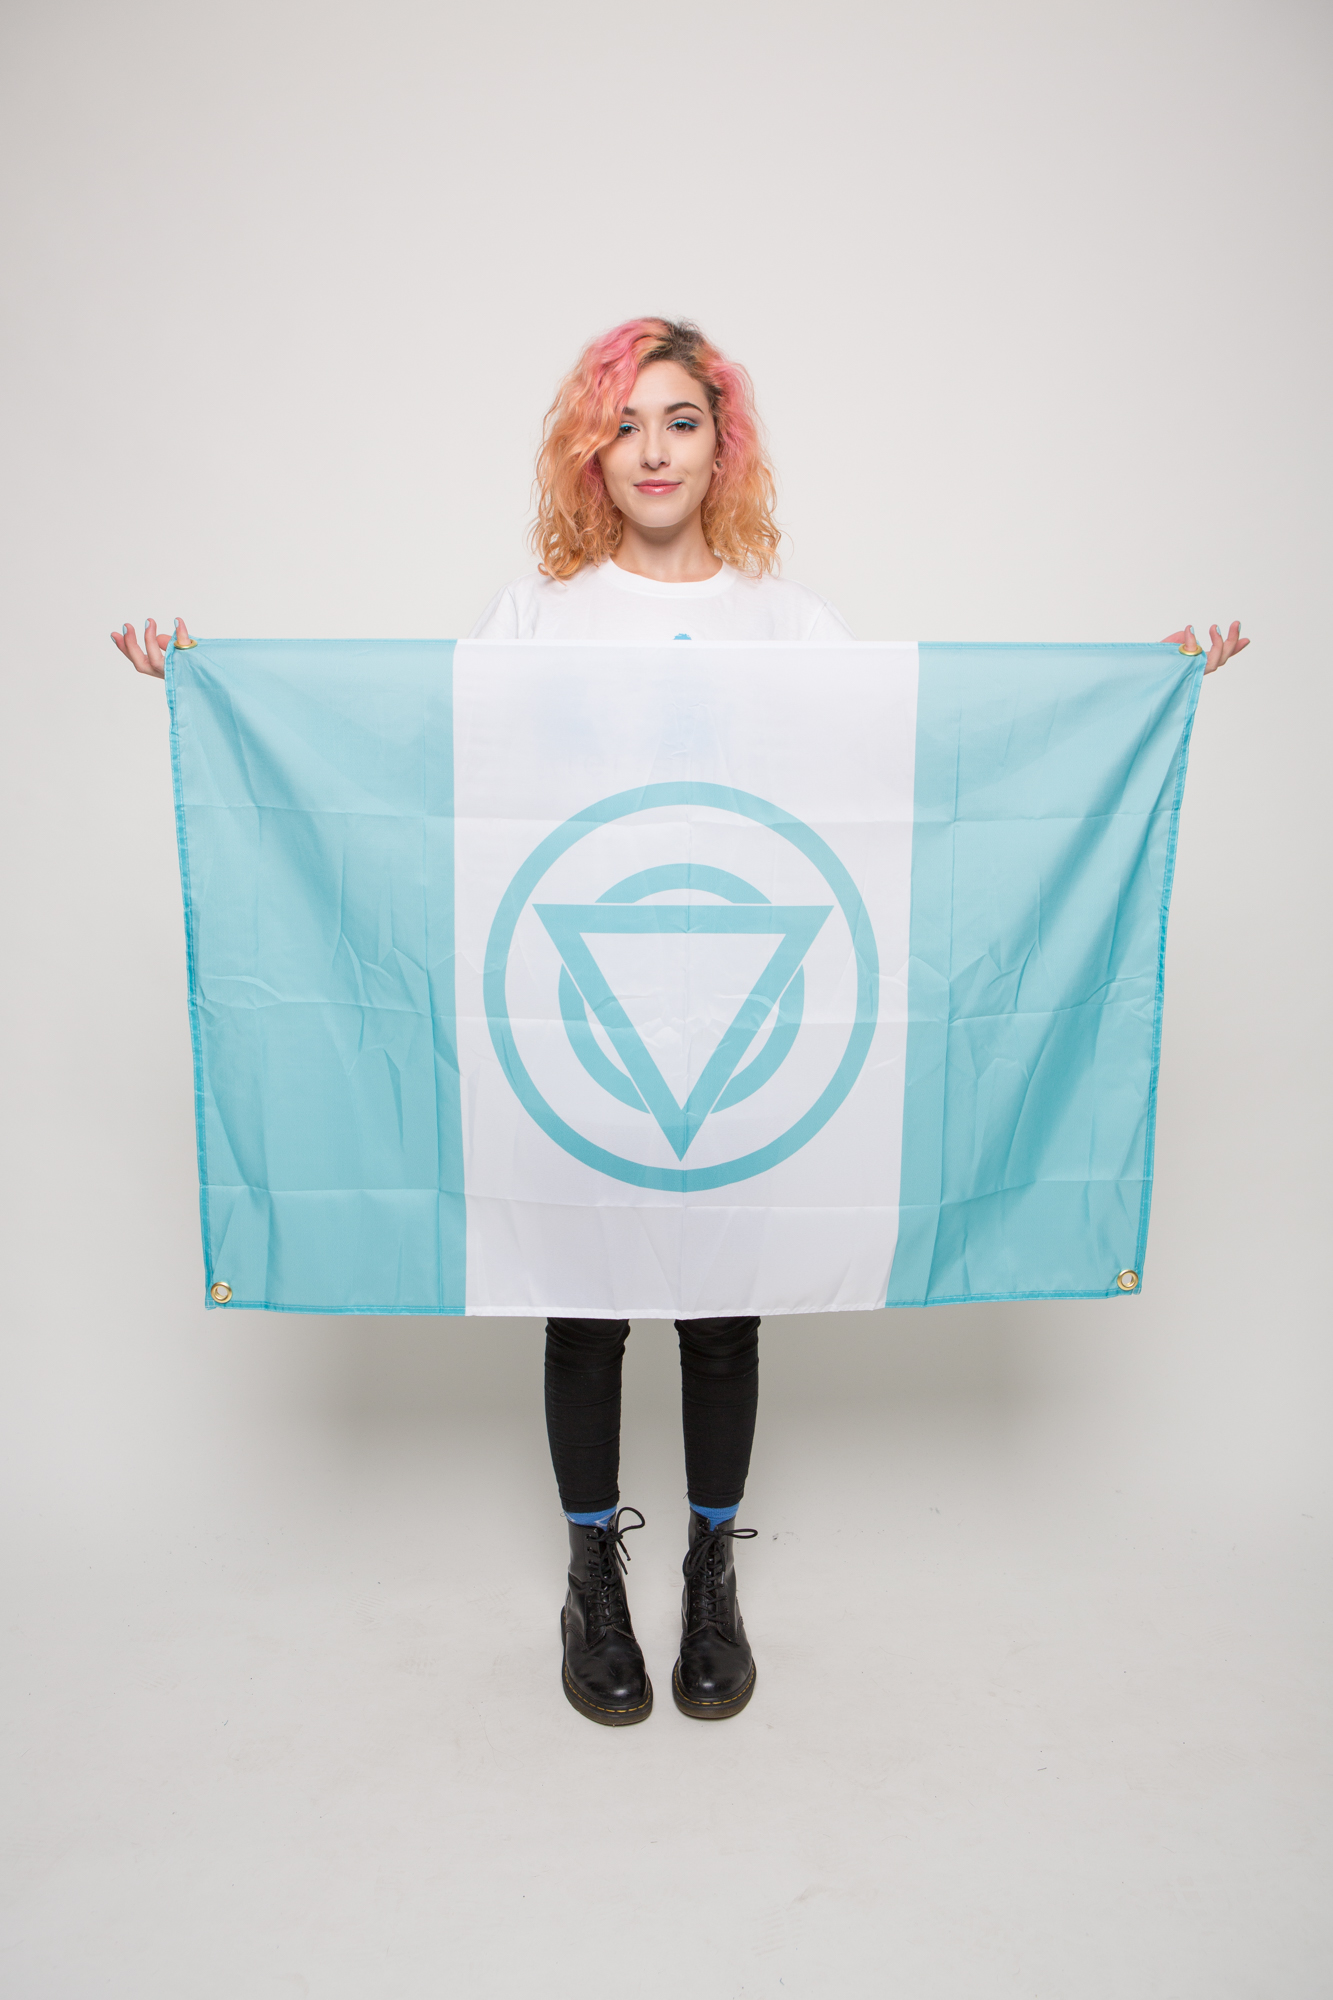 The Spark Flag - Enter Shikari